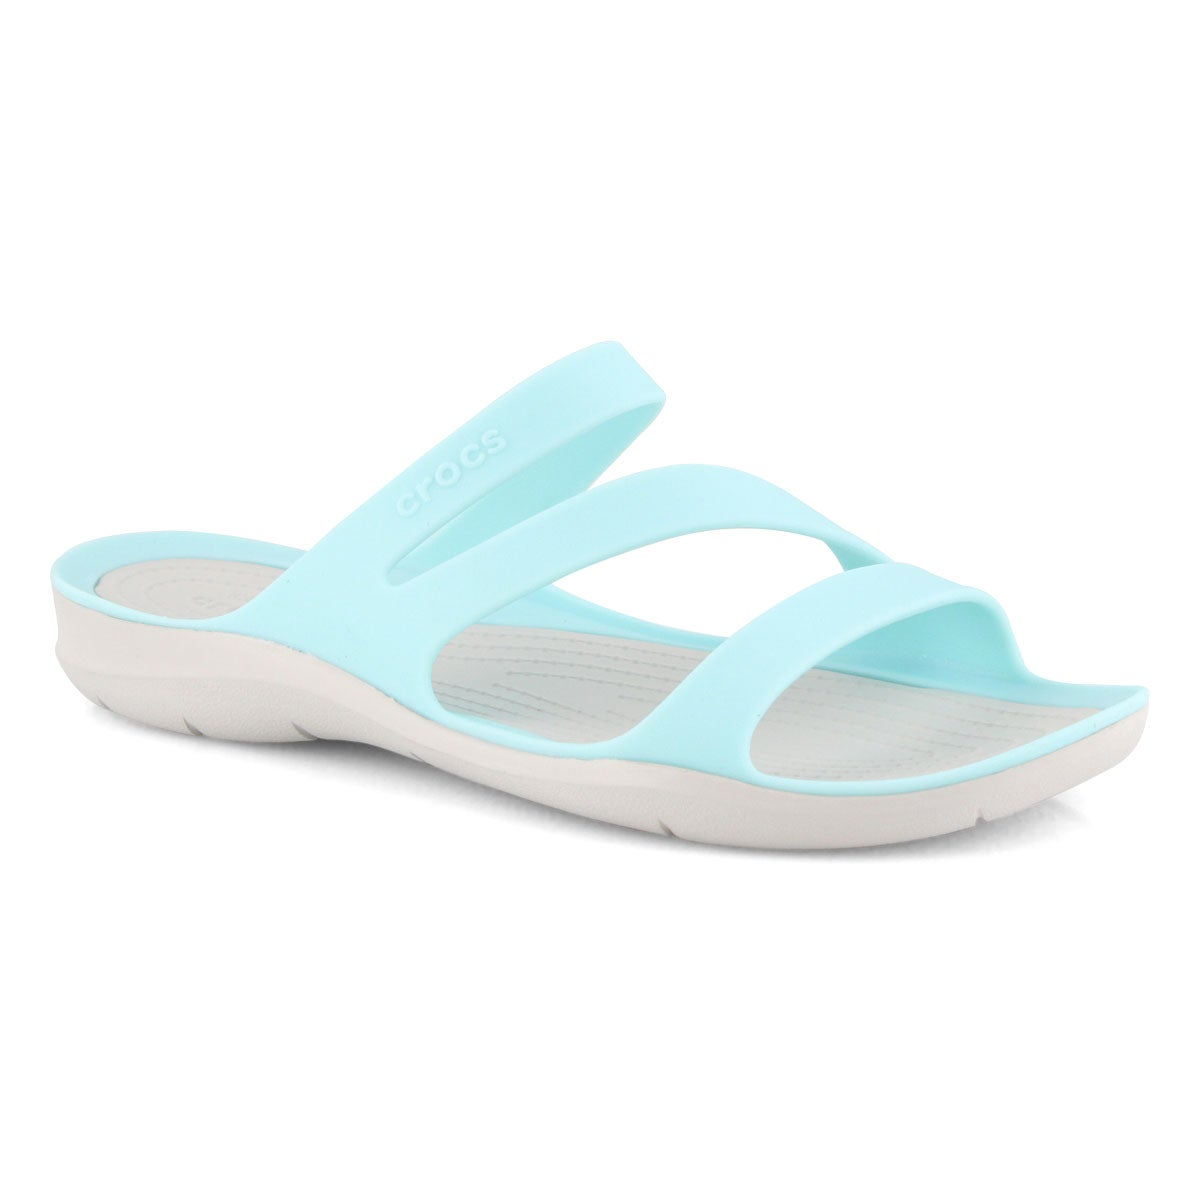 Lds Swiftwater ice blu/prl wht sandal